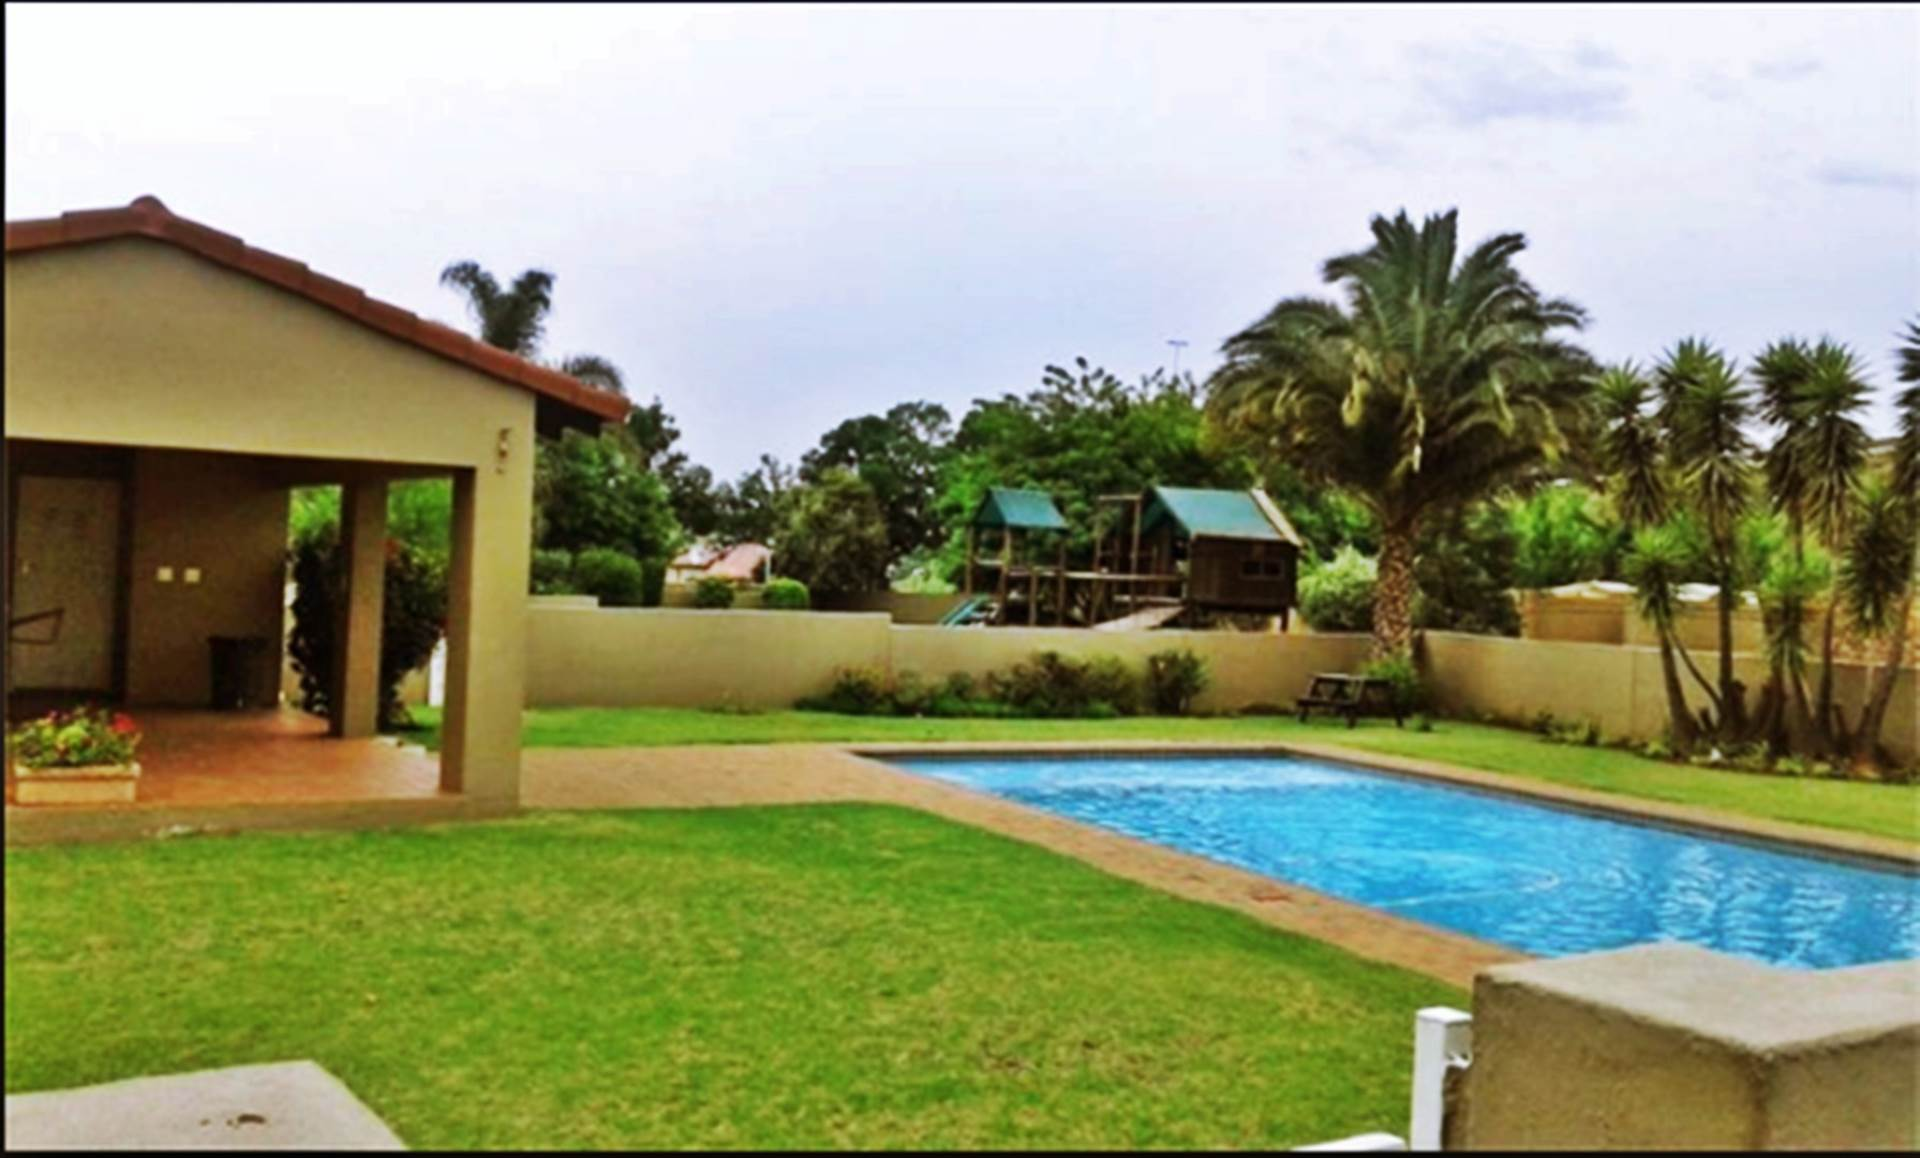 Apartment For Sale In Witfield Boksburg Gauteng For R 580 000